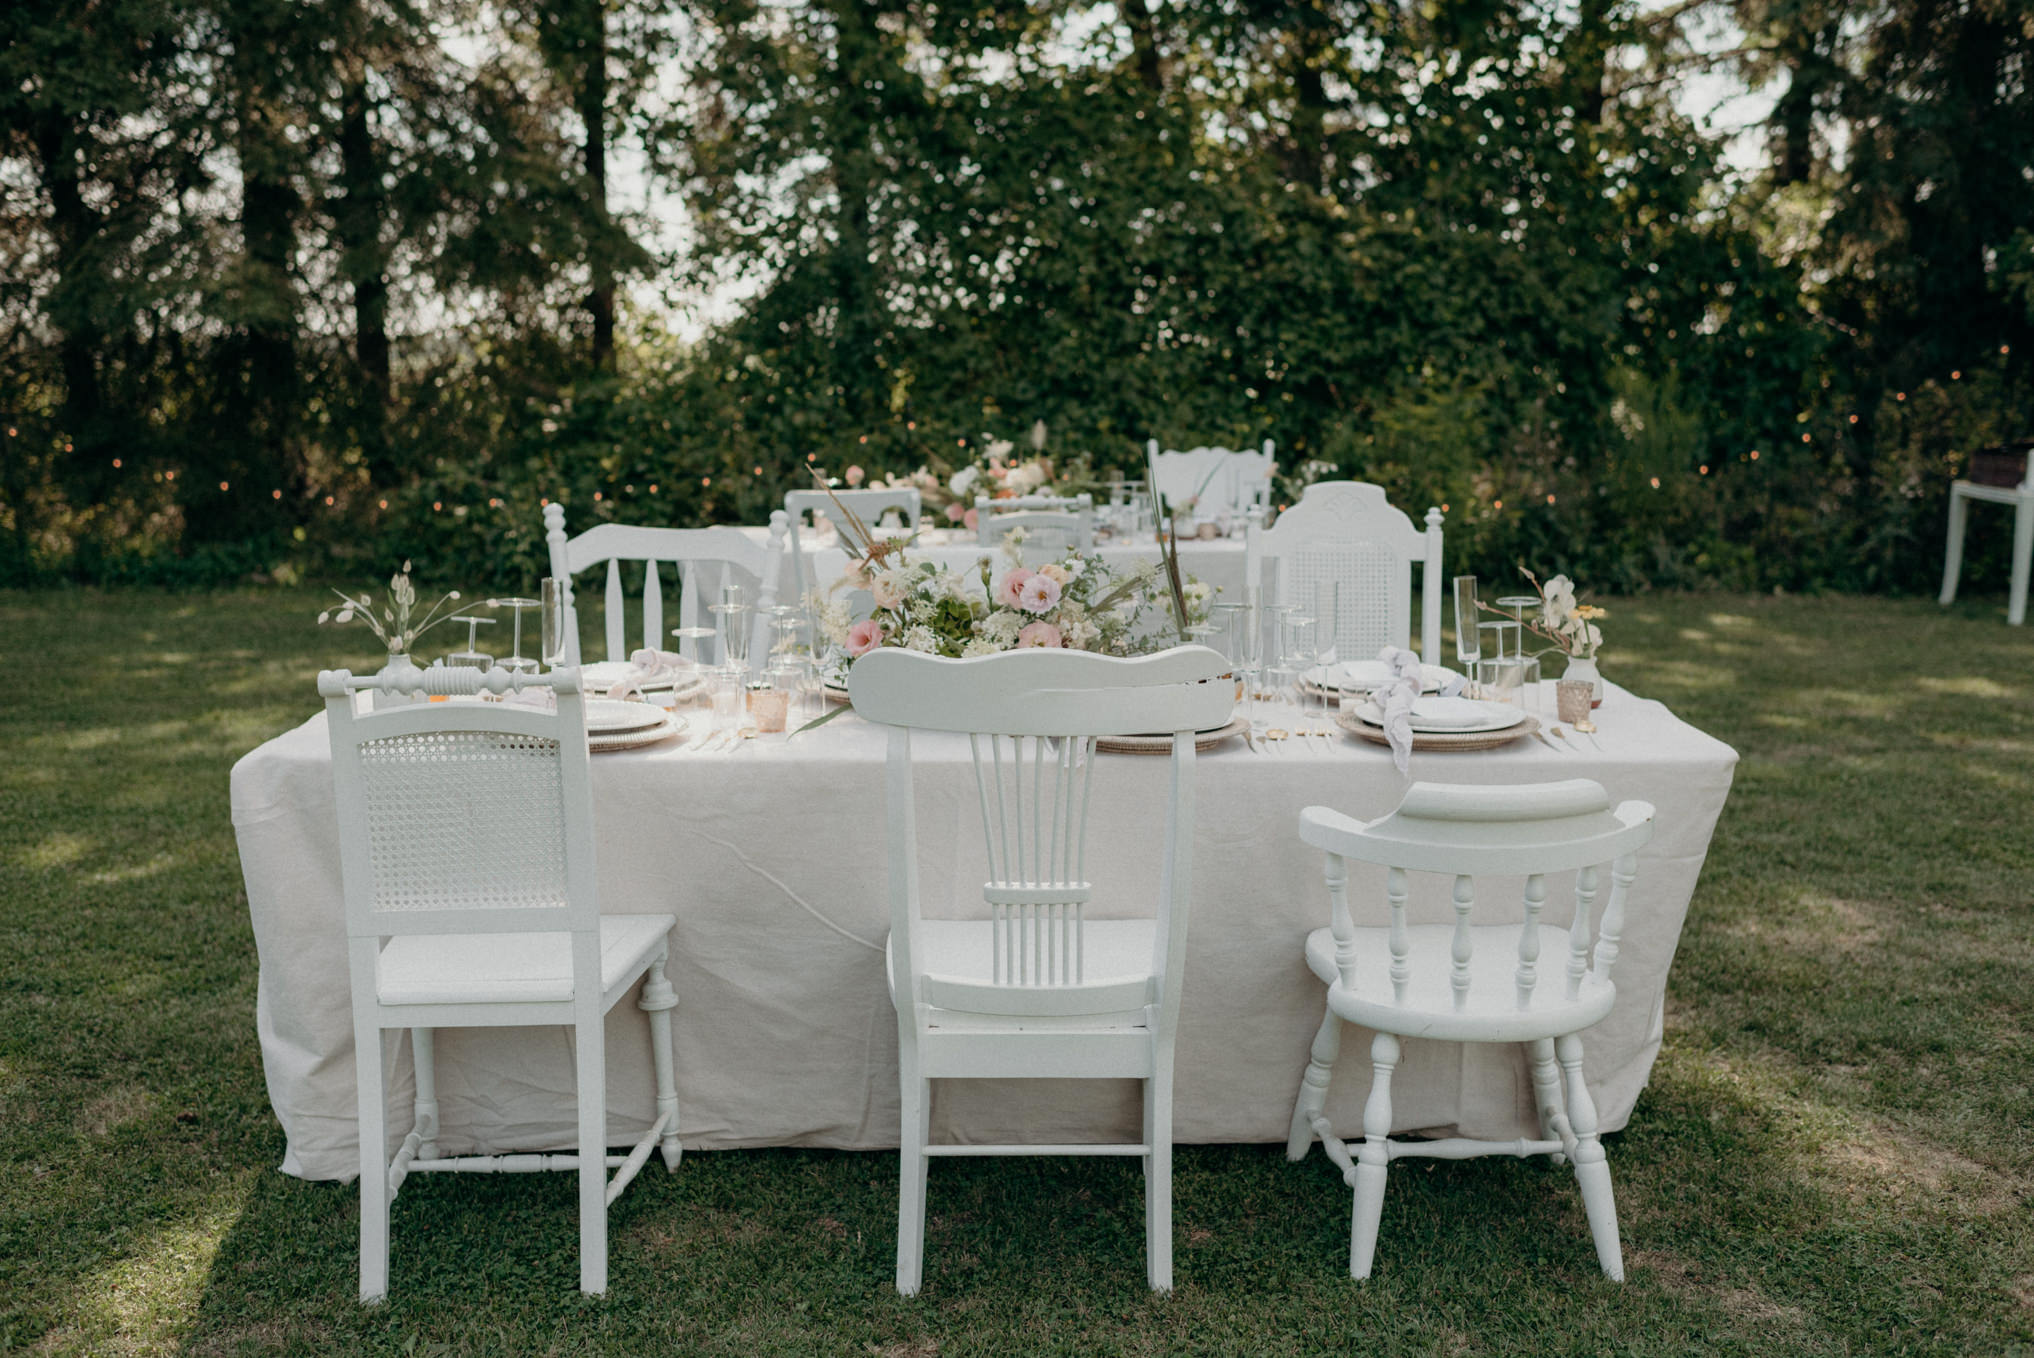 tables set up for outdoor wedding reception on grass surrounded by trees and string lights